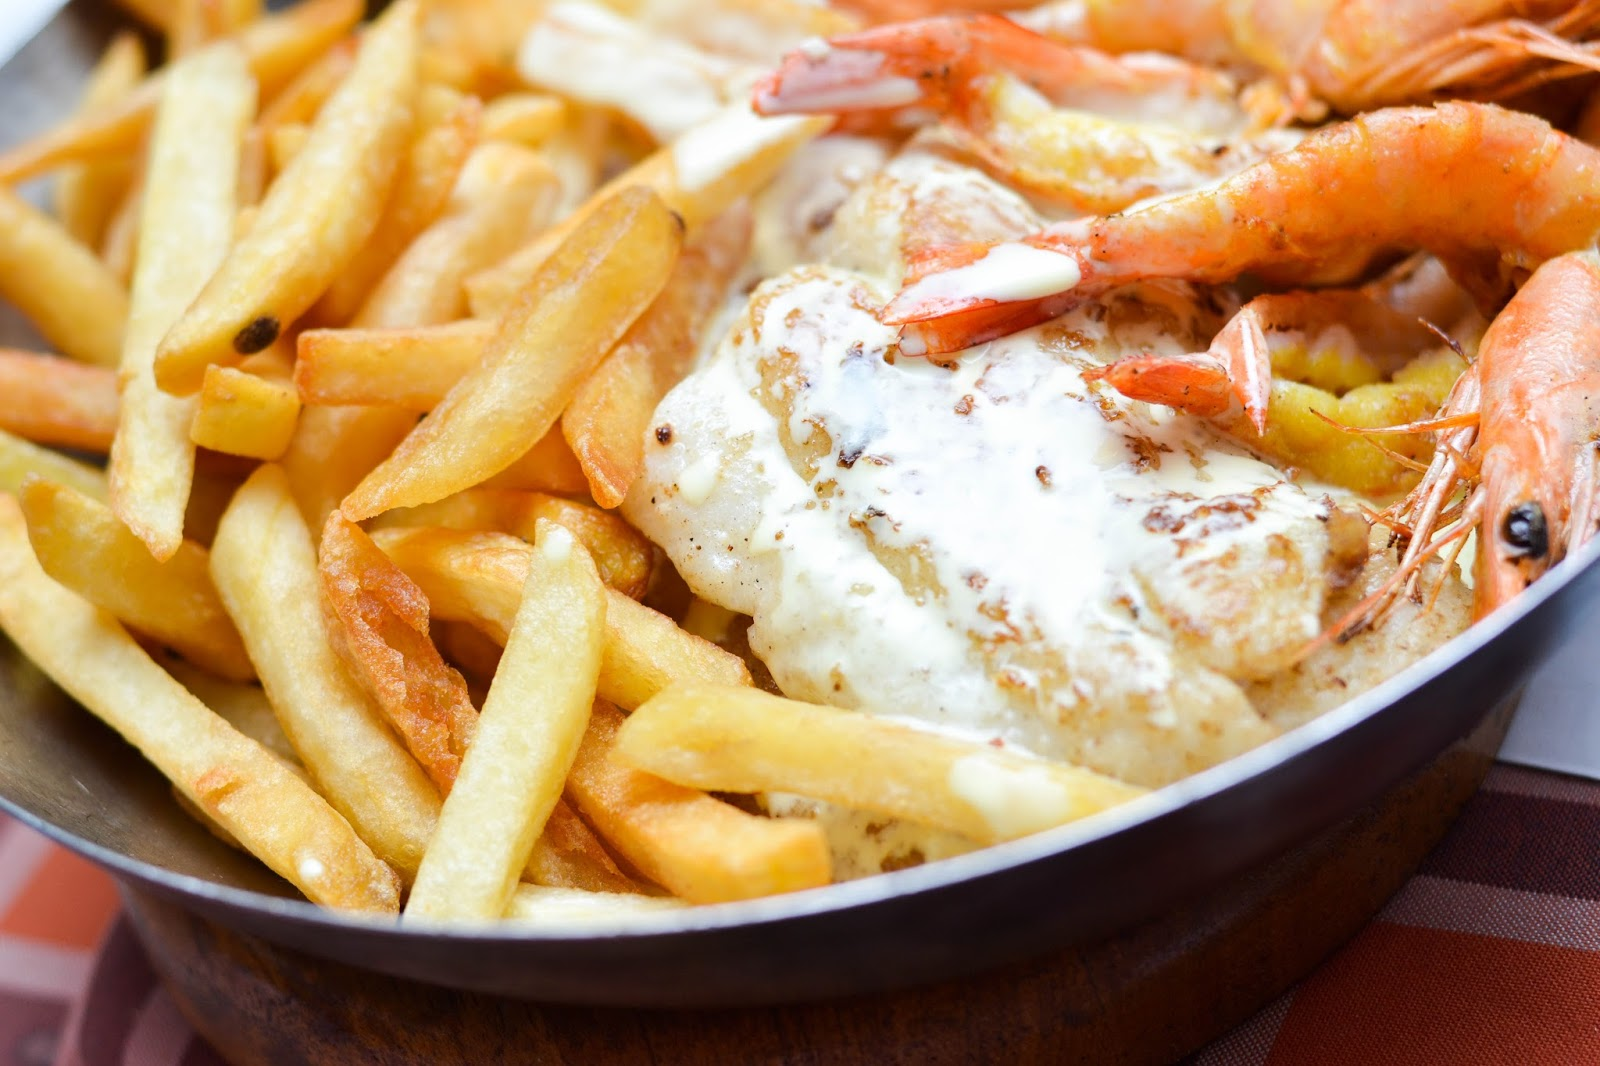 Prawns, Fish and Chips in a stainless steel bowl